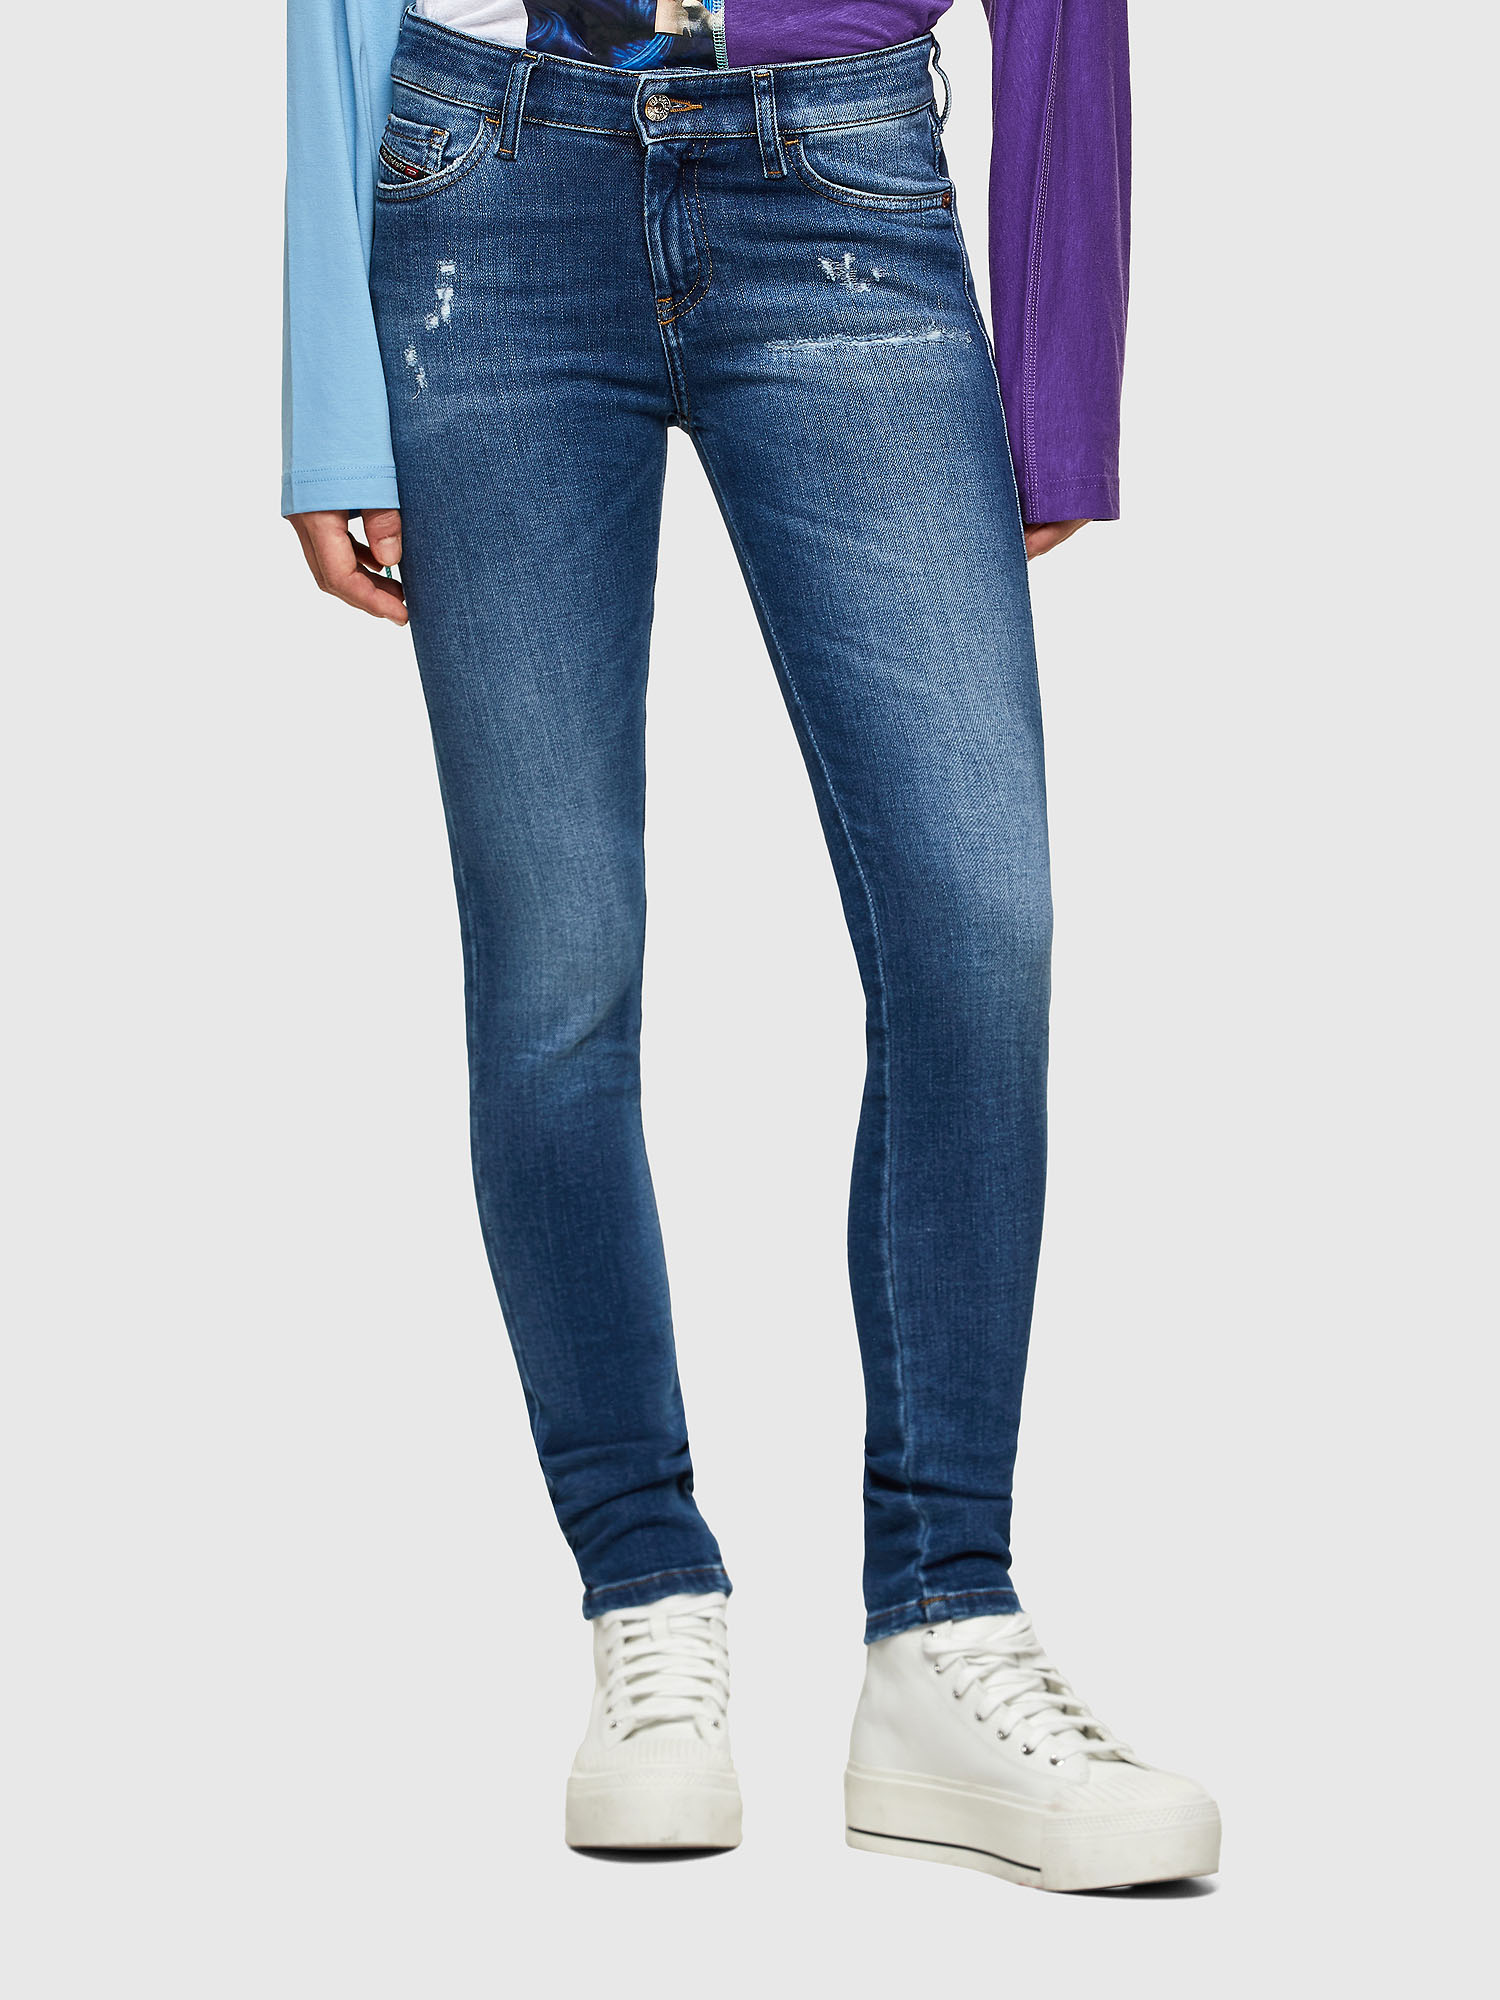 https://www.diesel.co.jp/products/detail.php?product_id=2307046&brand=diesel&subcat=women&classcategory_id1=2324107&category_id=10028